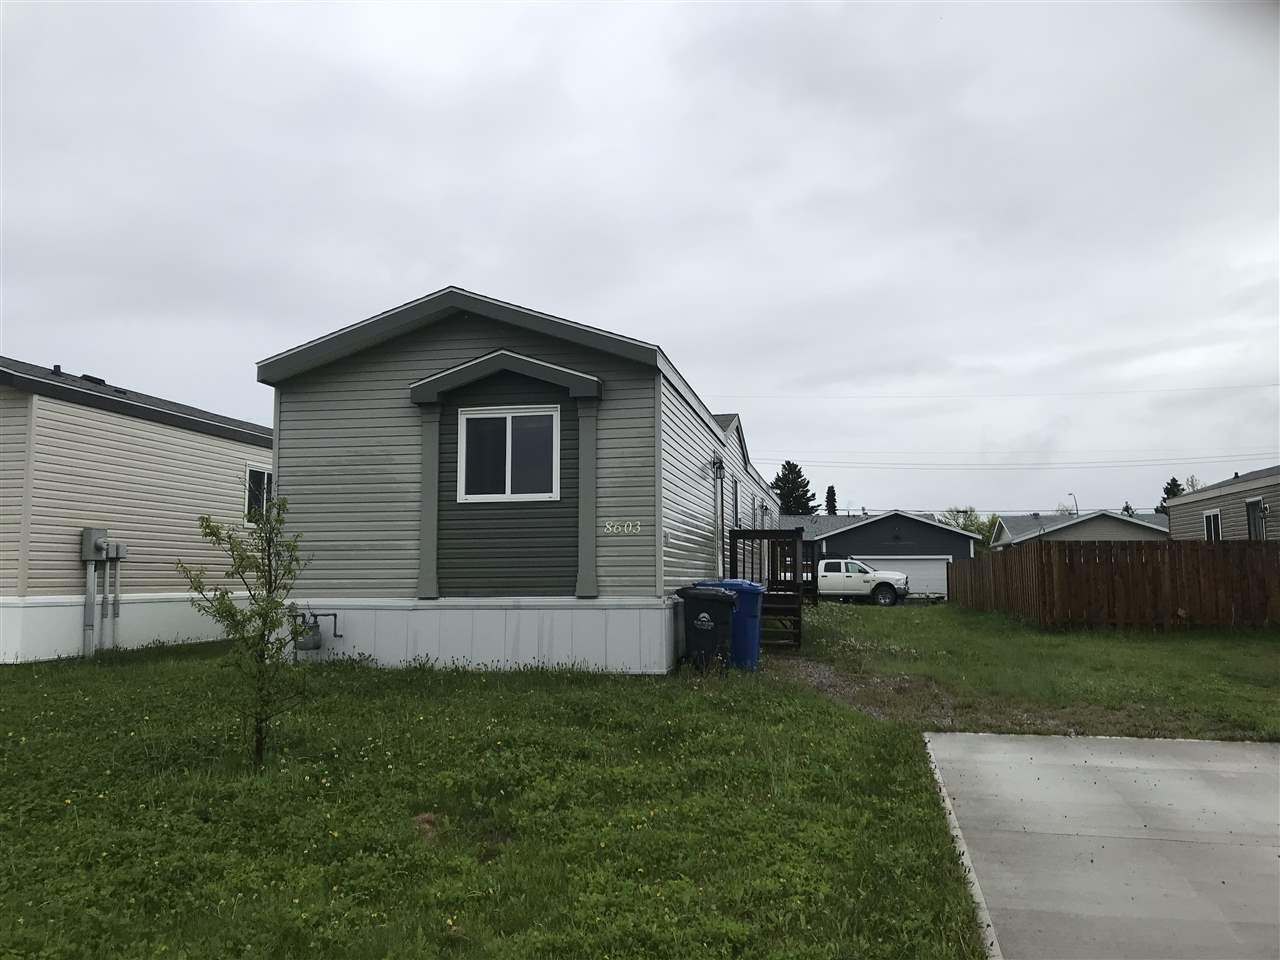 Main Photo: 8603 79A Street in Fort St. John: Fort St. John - City SE Manufactured Home for sale (Fort St. John (Zone 60))  : MLS®# R2463419